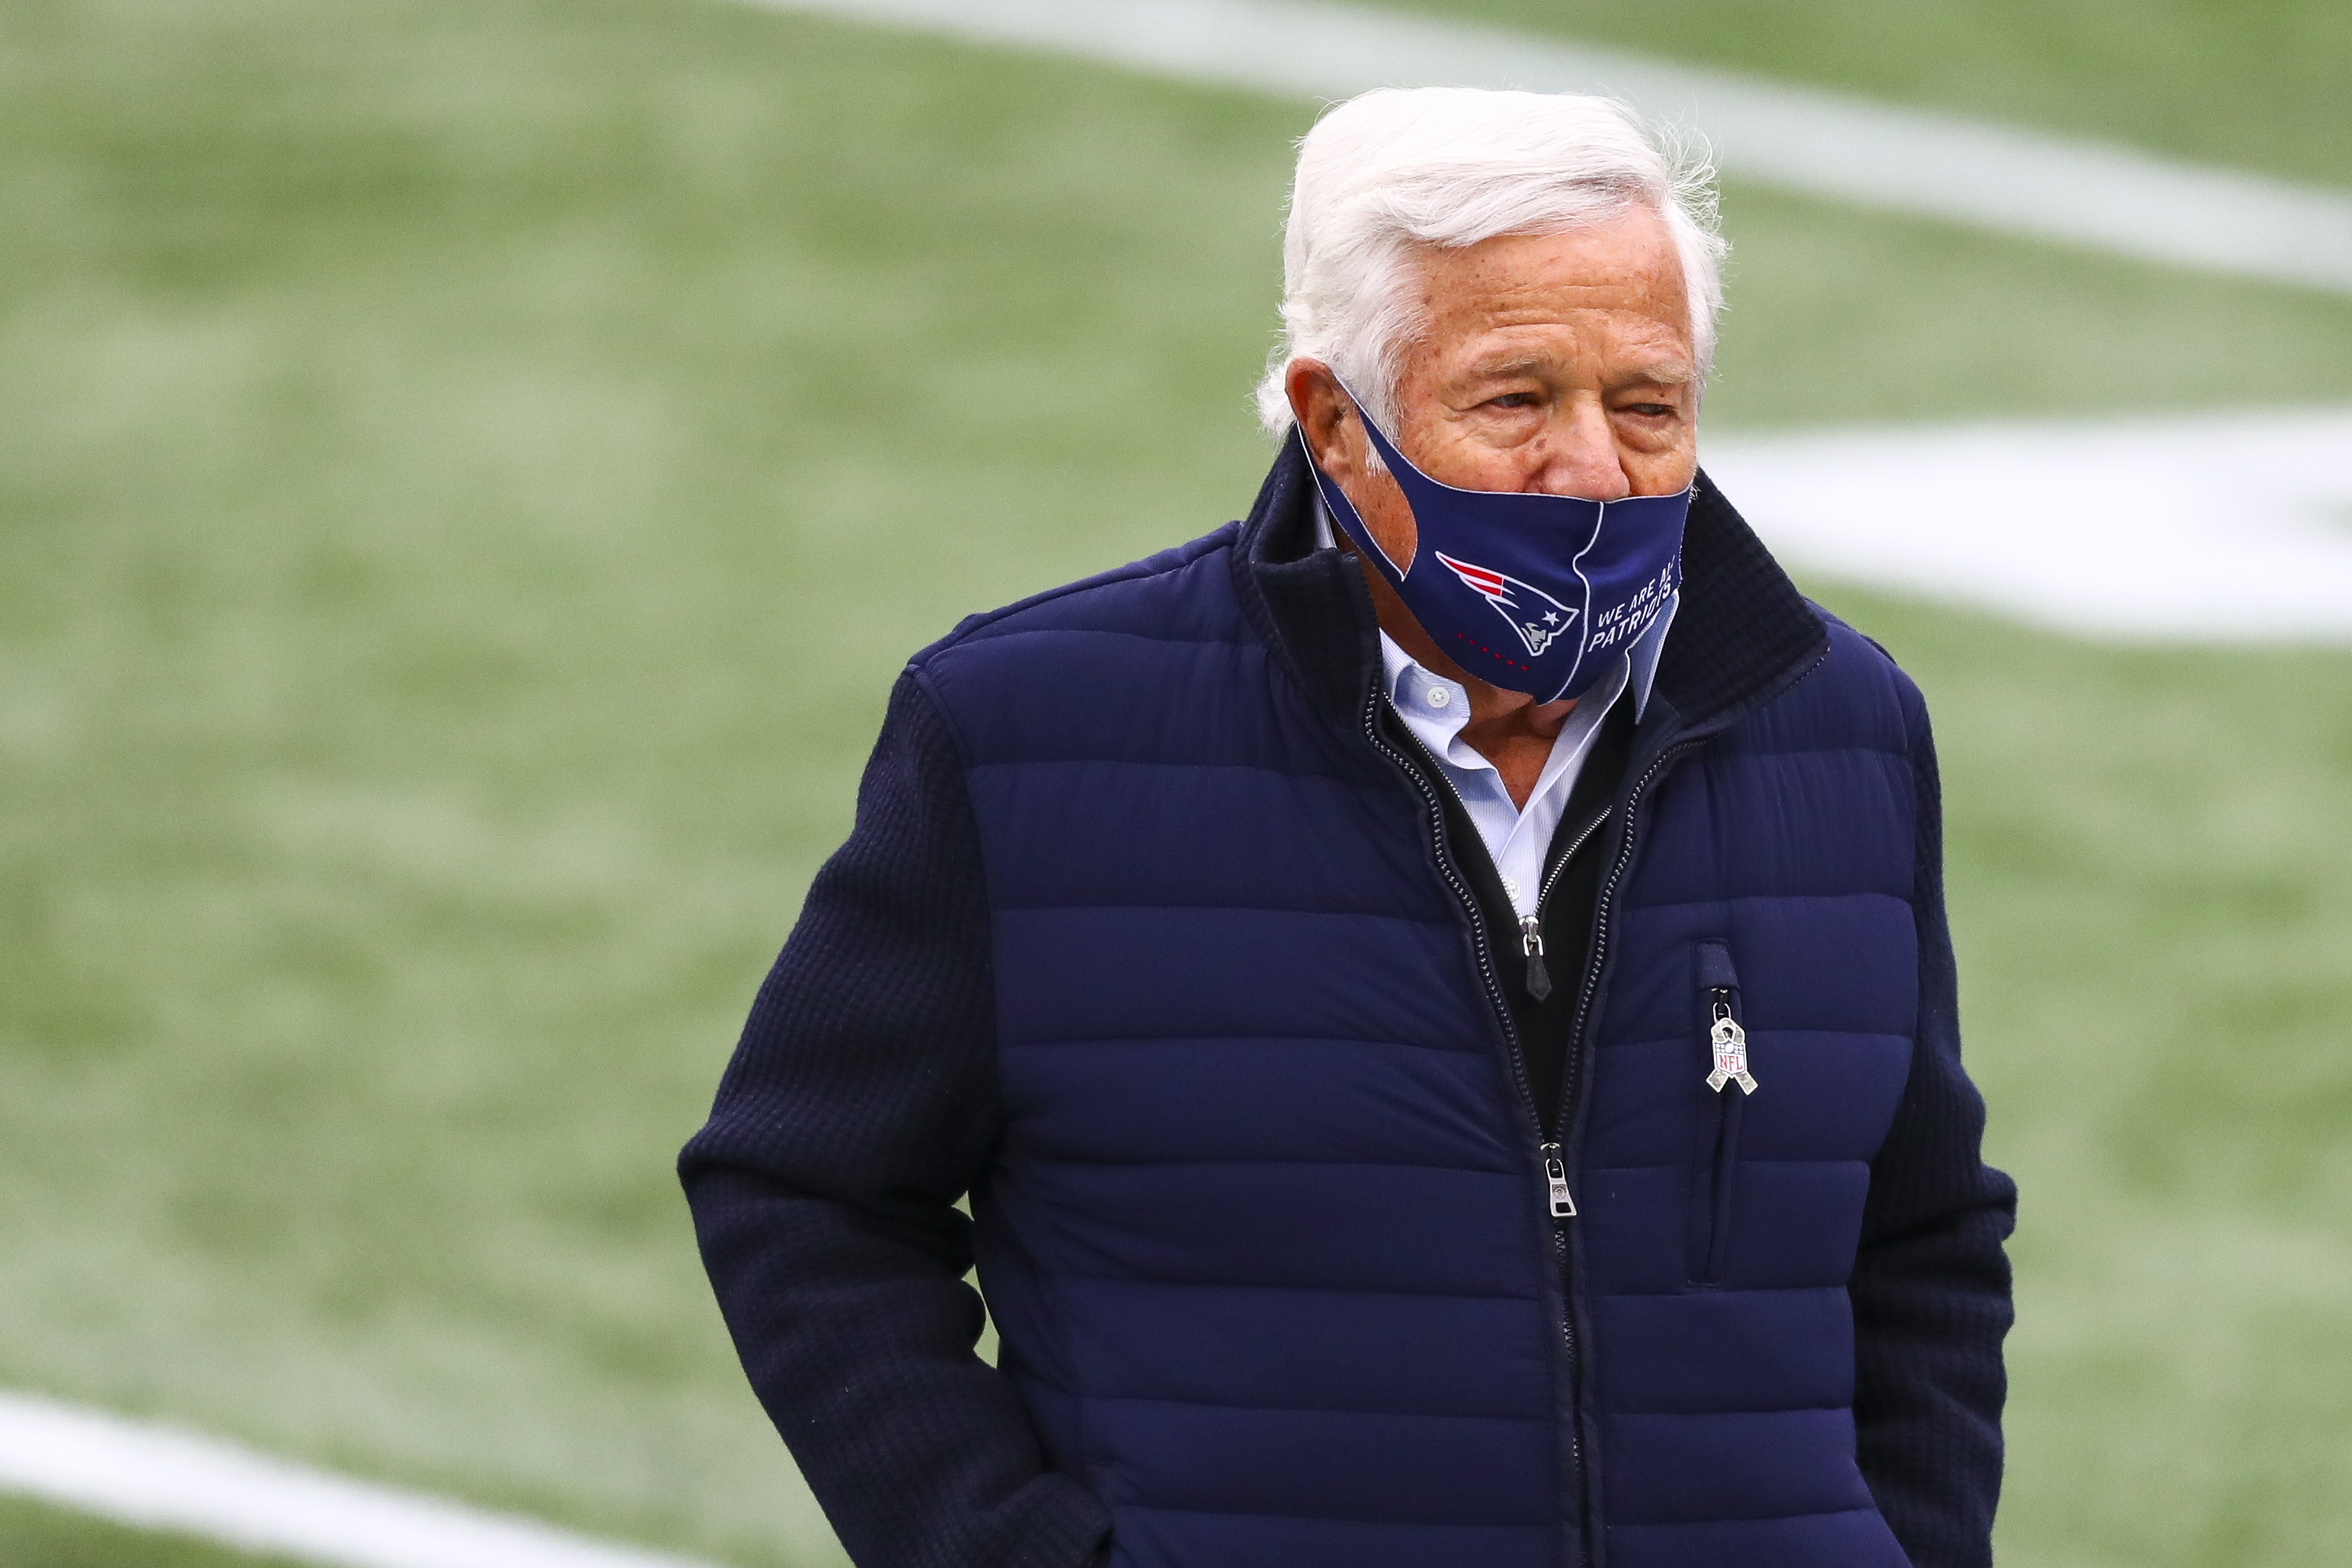 Robert Kraft's recent comments may rile up some Patriots fans.